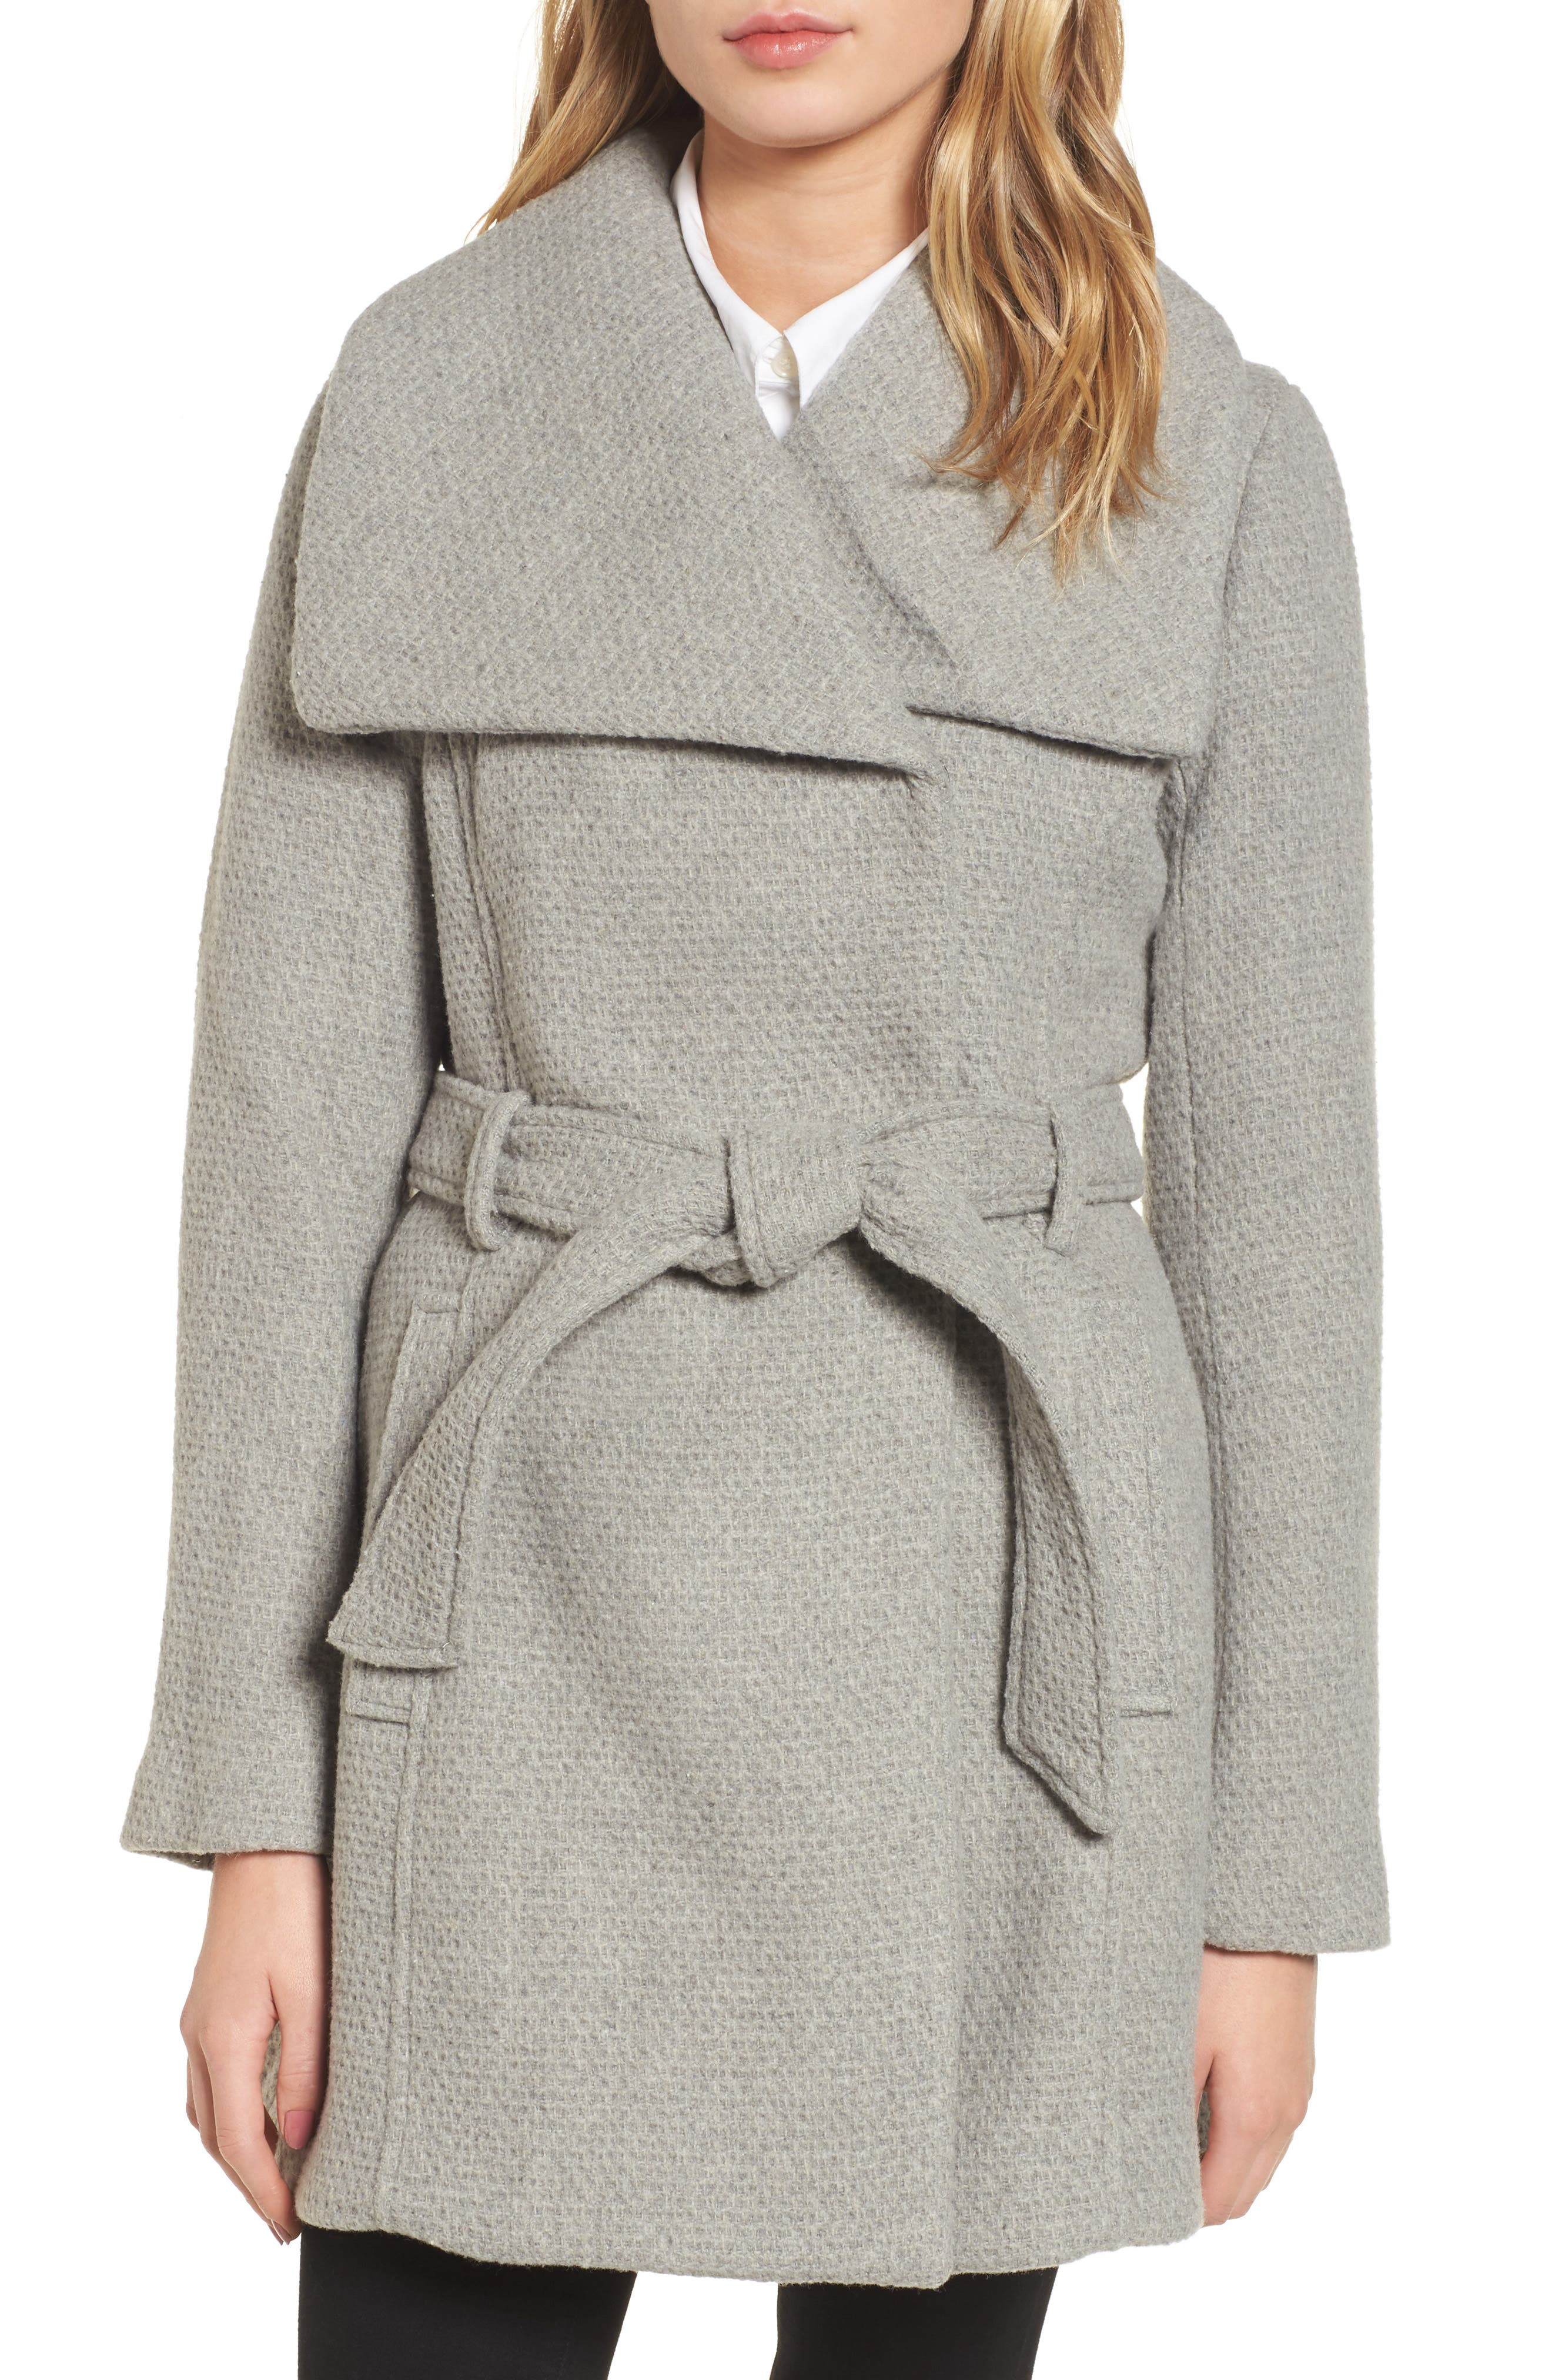 STEVE MADDEN, Belted Waffle Woven Coat, Main thumbnail 1, color, 038